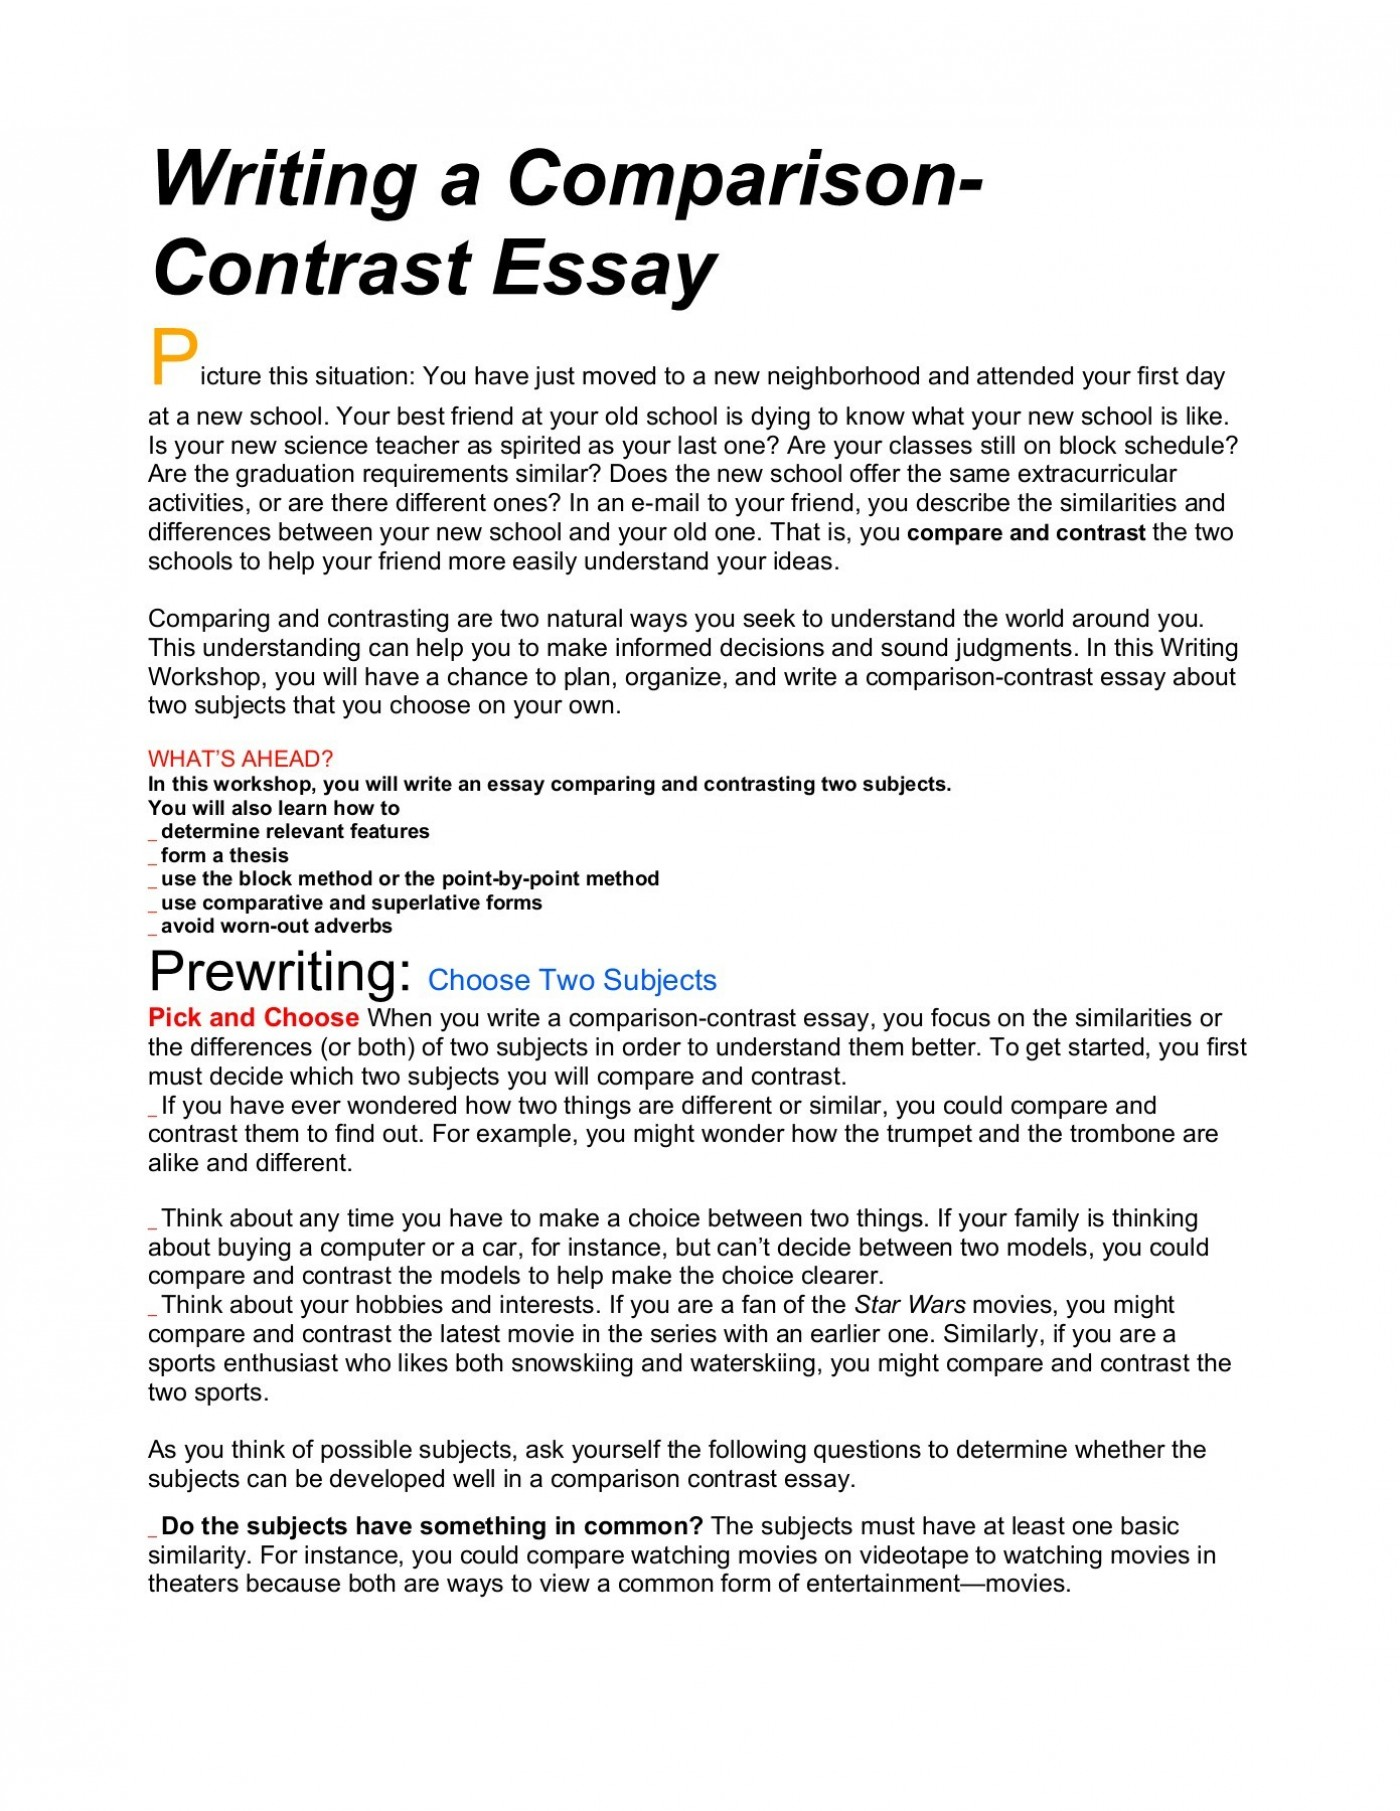 003 Comparison And Contrast Essayss Essay Ideas Maus Compare Thatsnotus